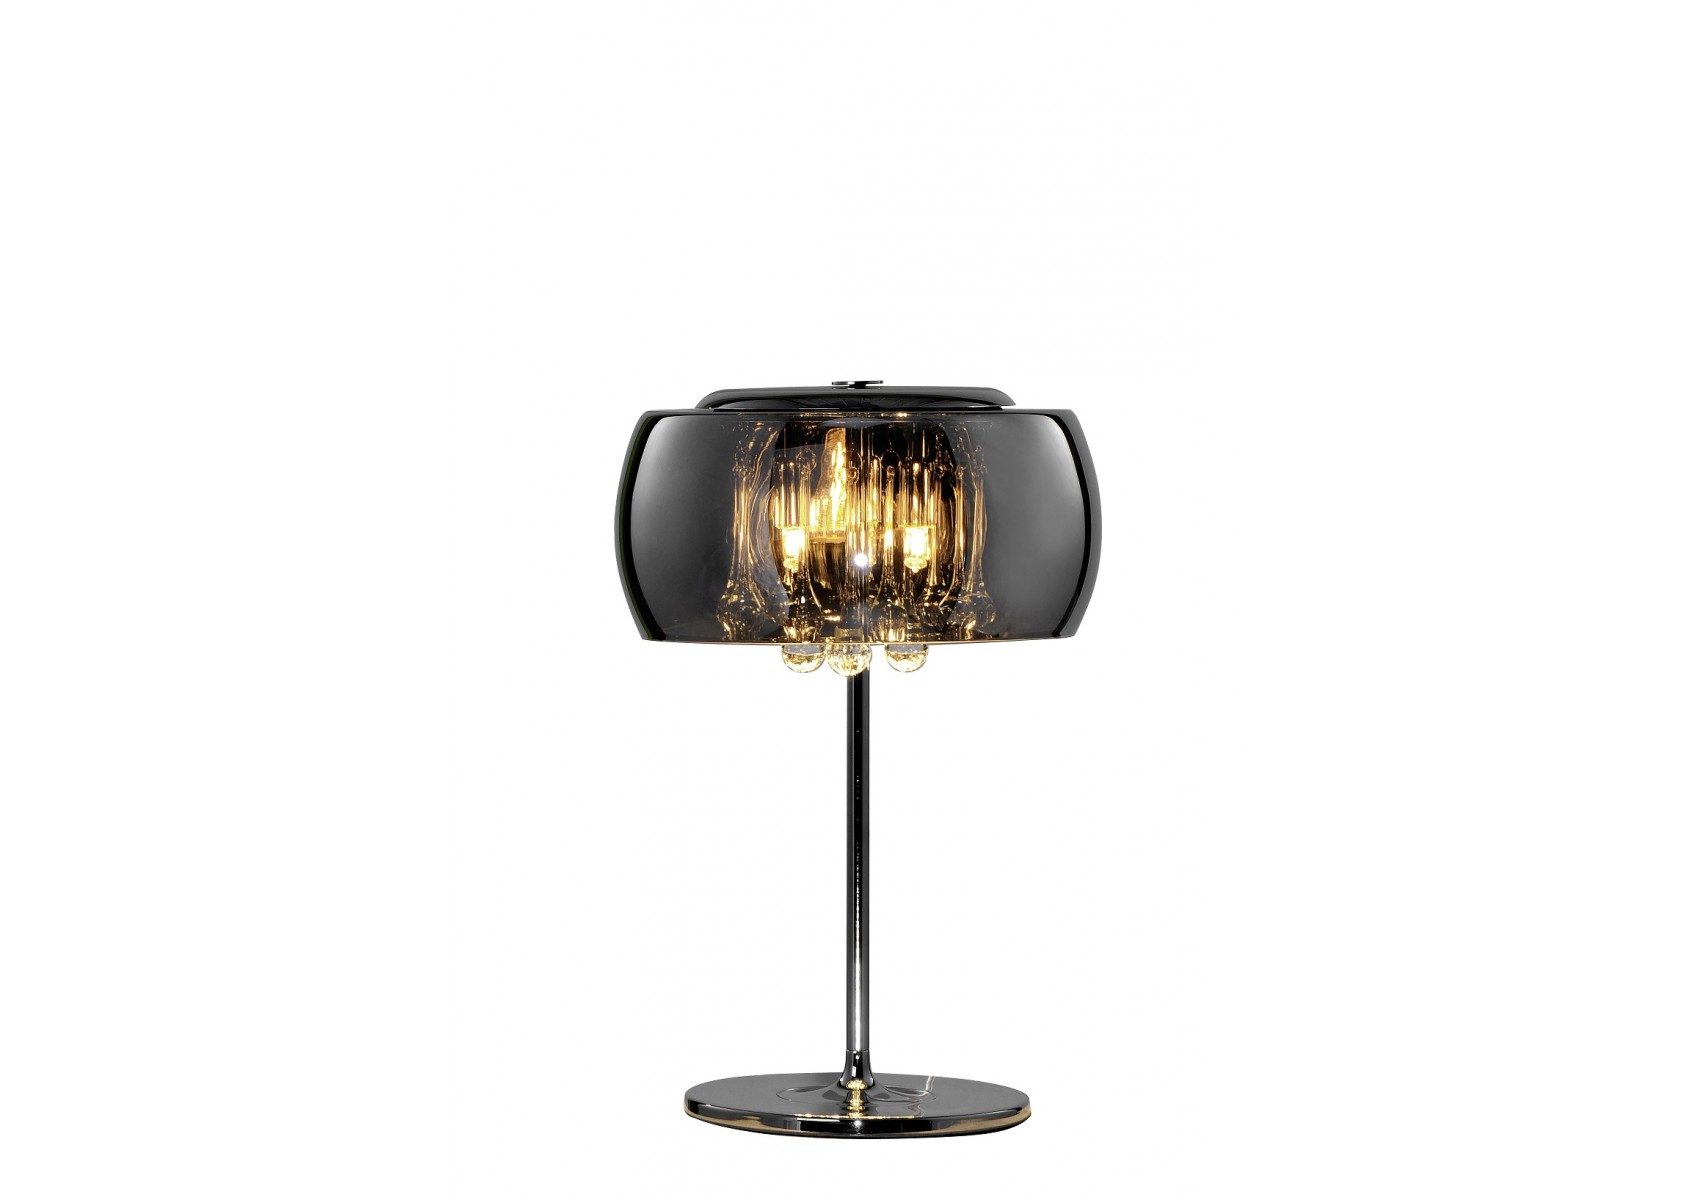 Lampe poser vapore la fois baroque et design en verre for Lampe de table rona